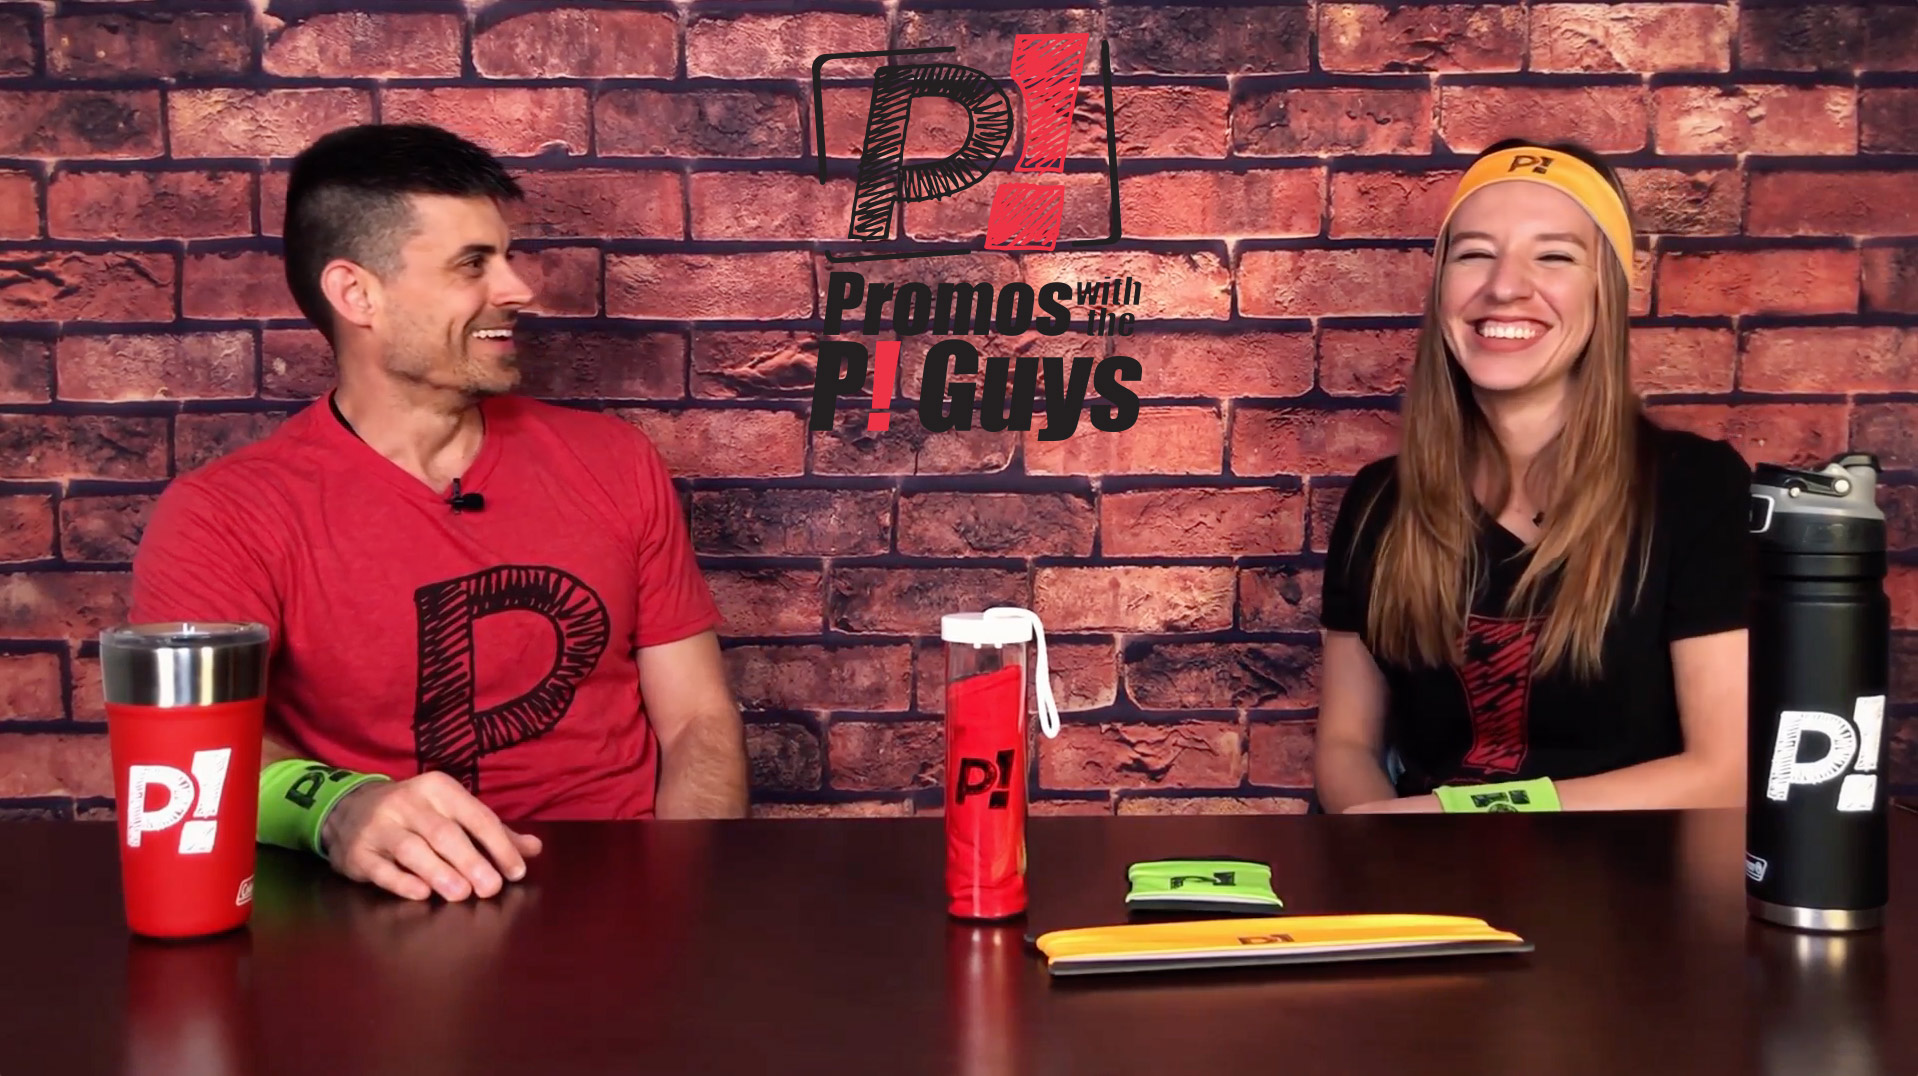 Promos with the P! Guys - Episode 18 - Custom Cooling Towels